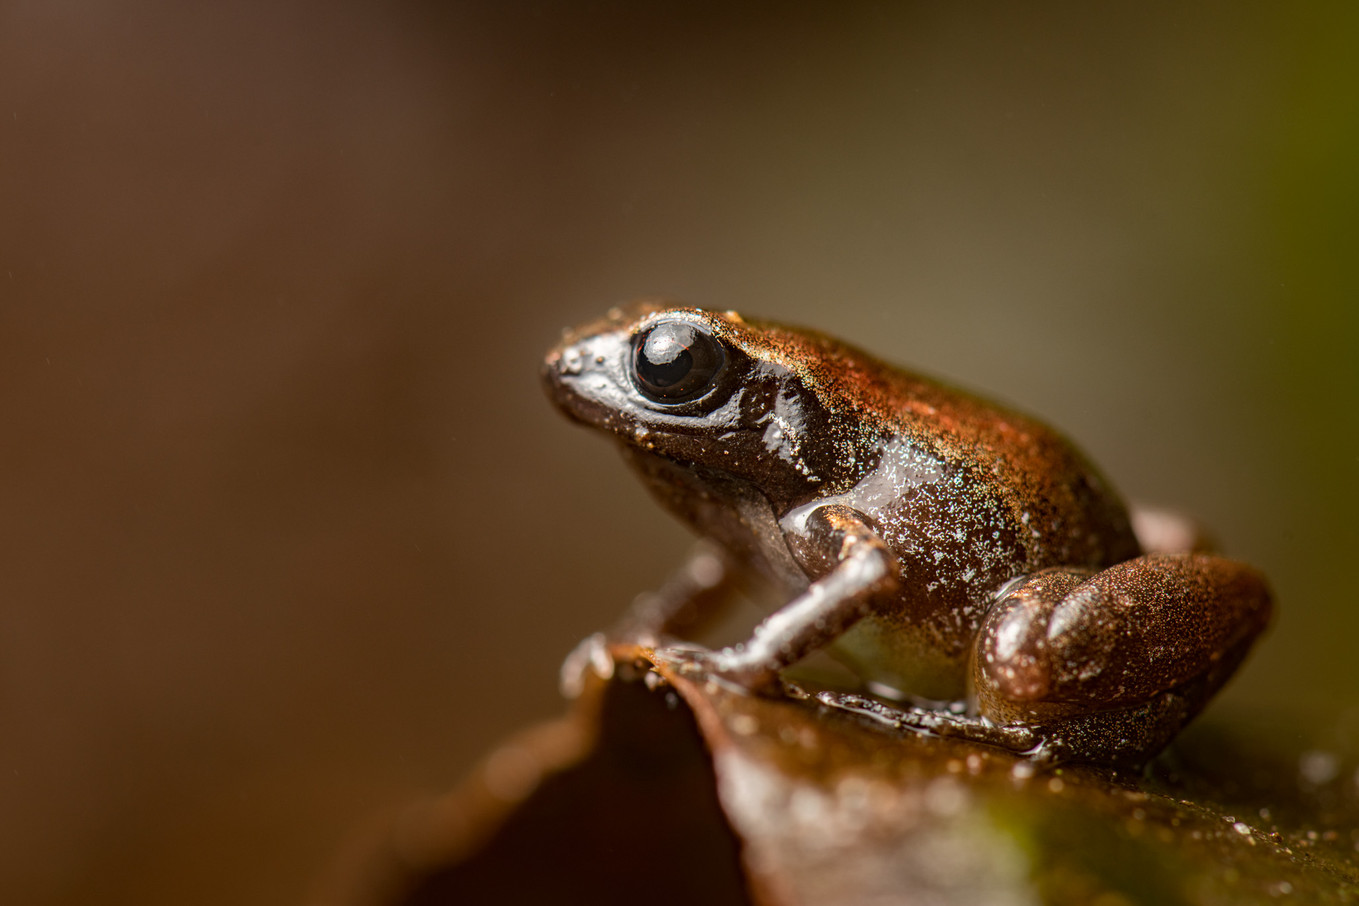 Another new species of frog